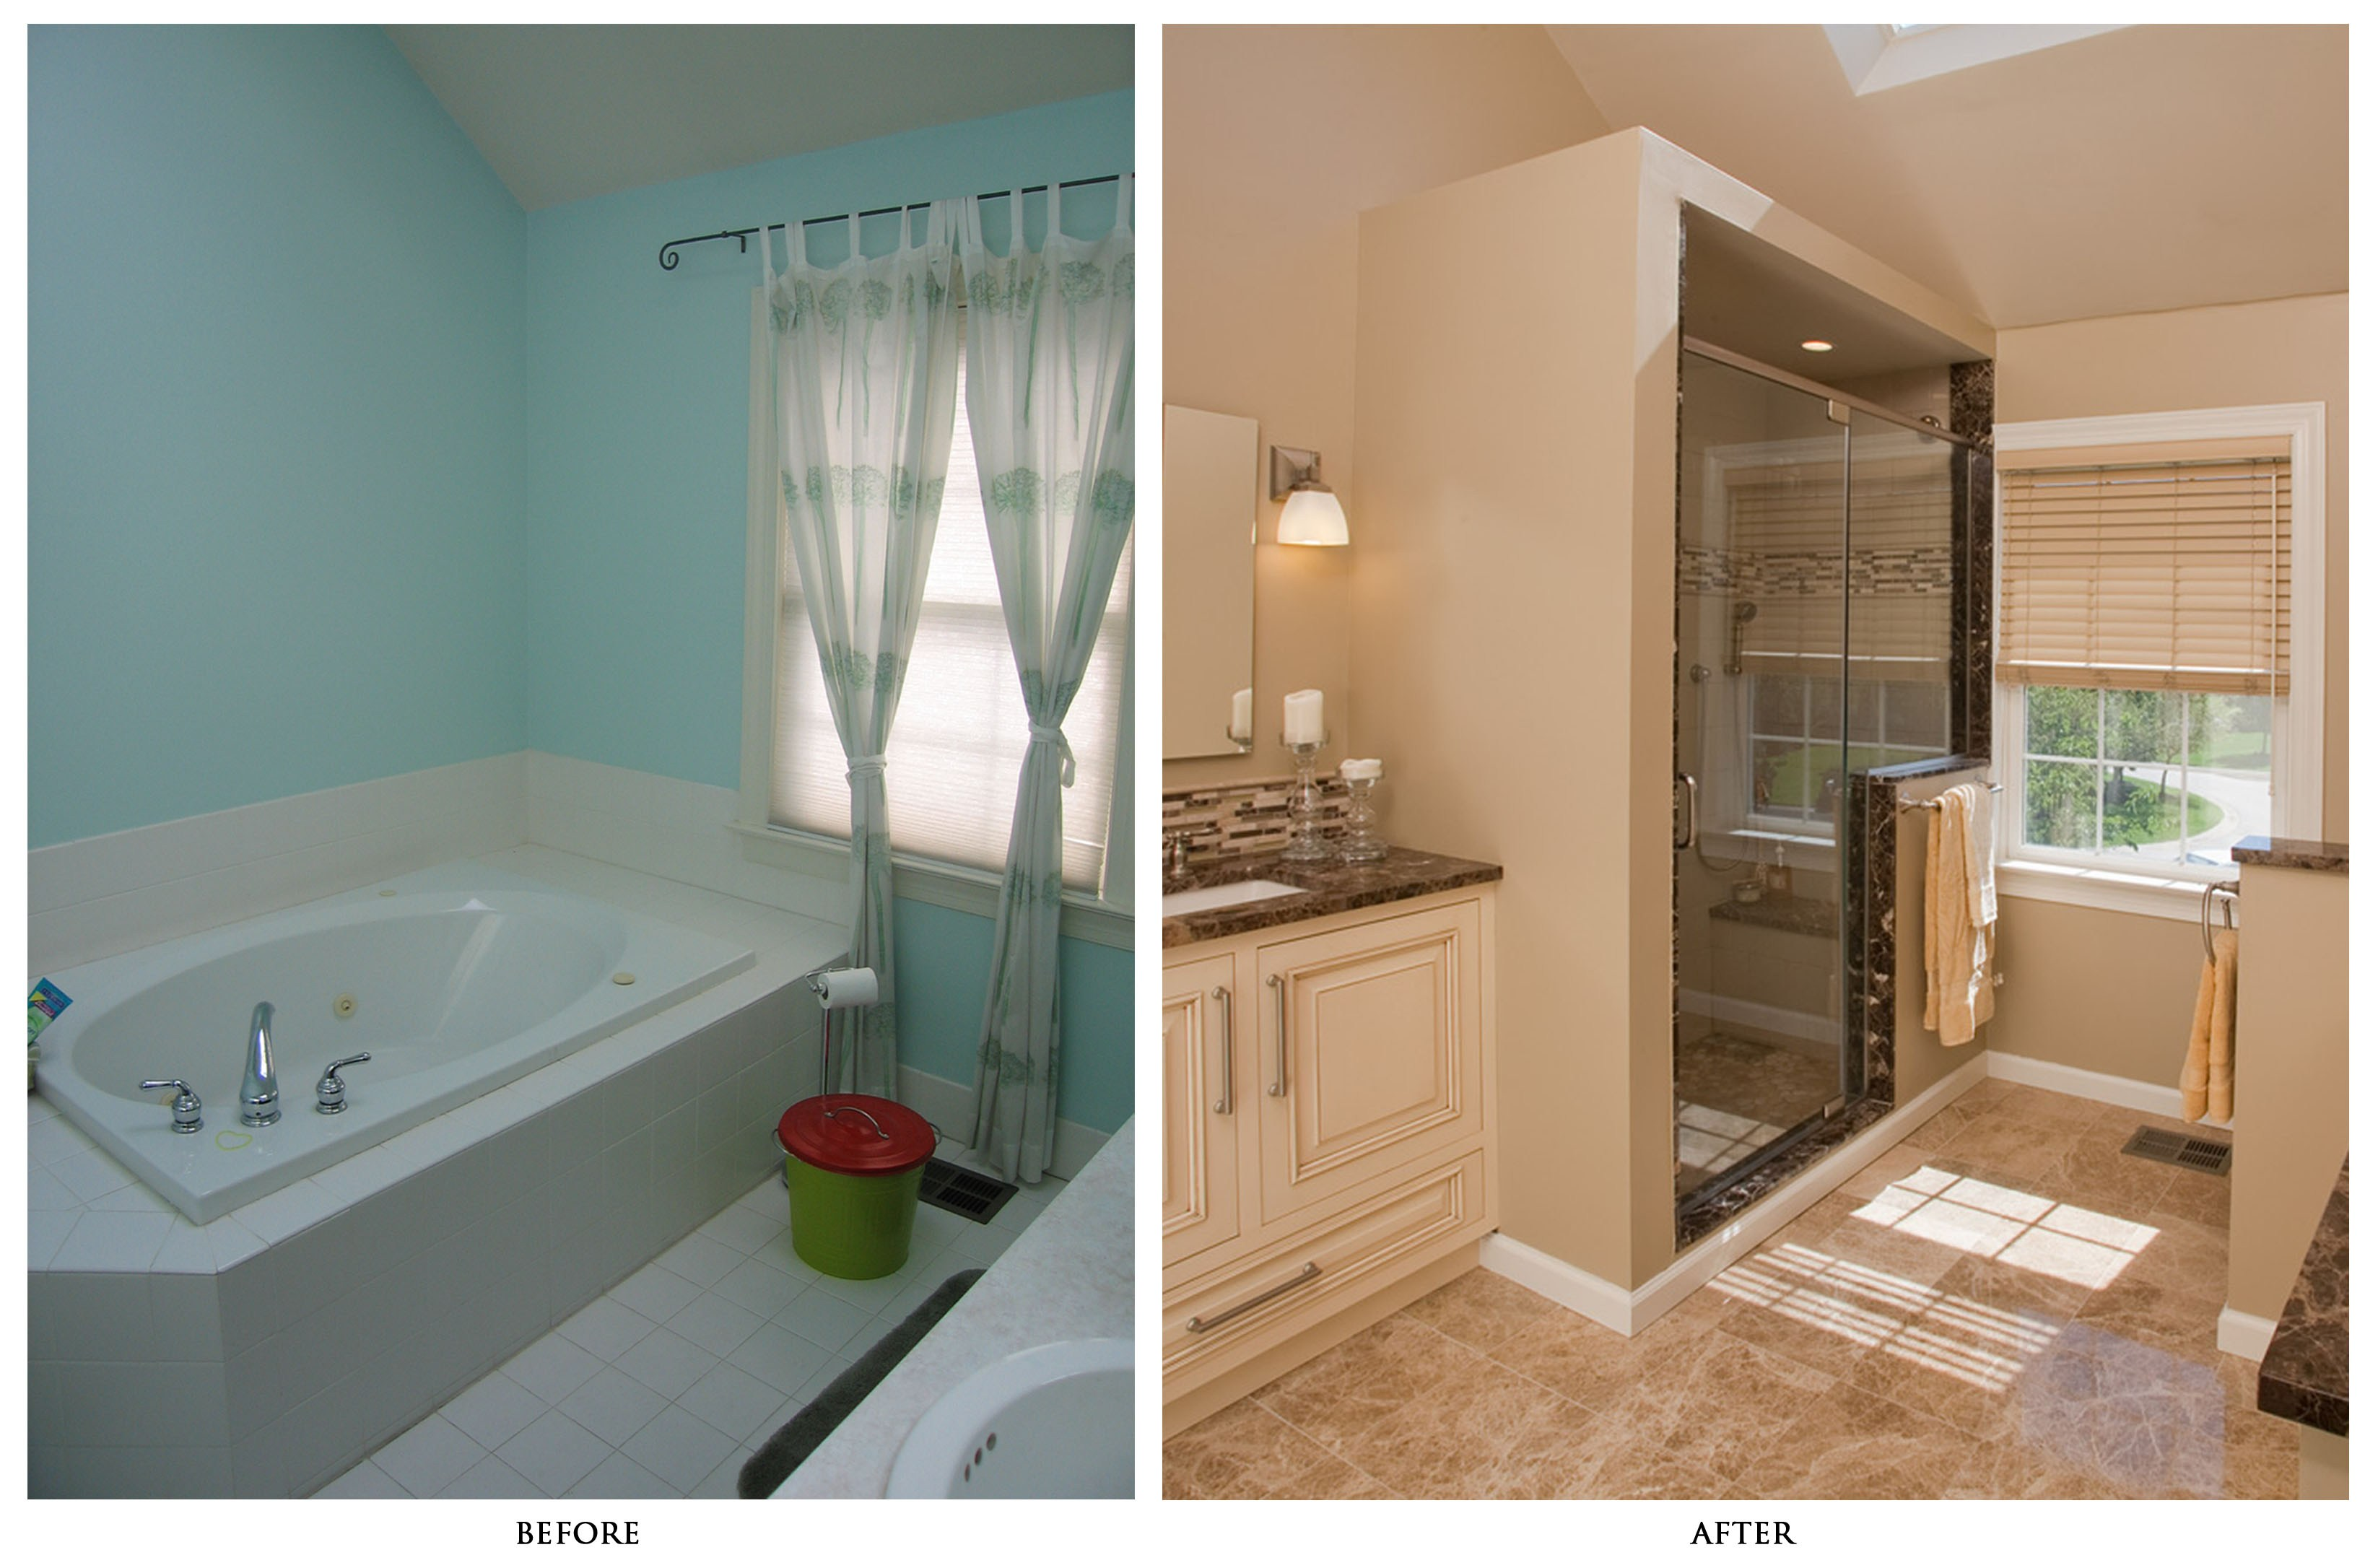 10 bathroom remodeling ideas lovely spaces tub to shower bathroom remodeling ideas lovelyspaces com